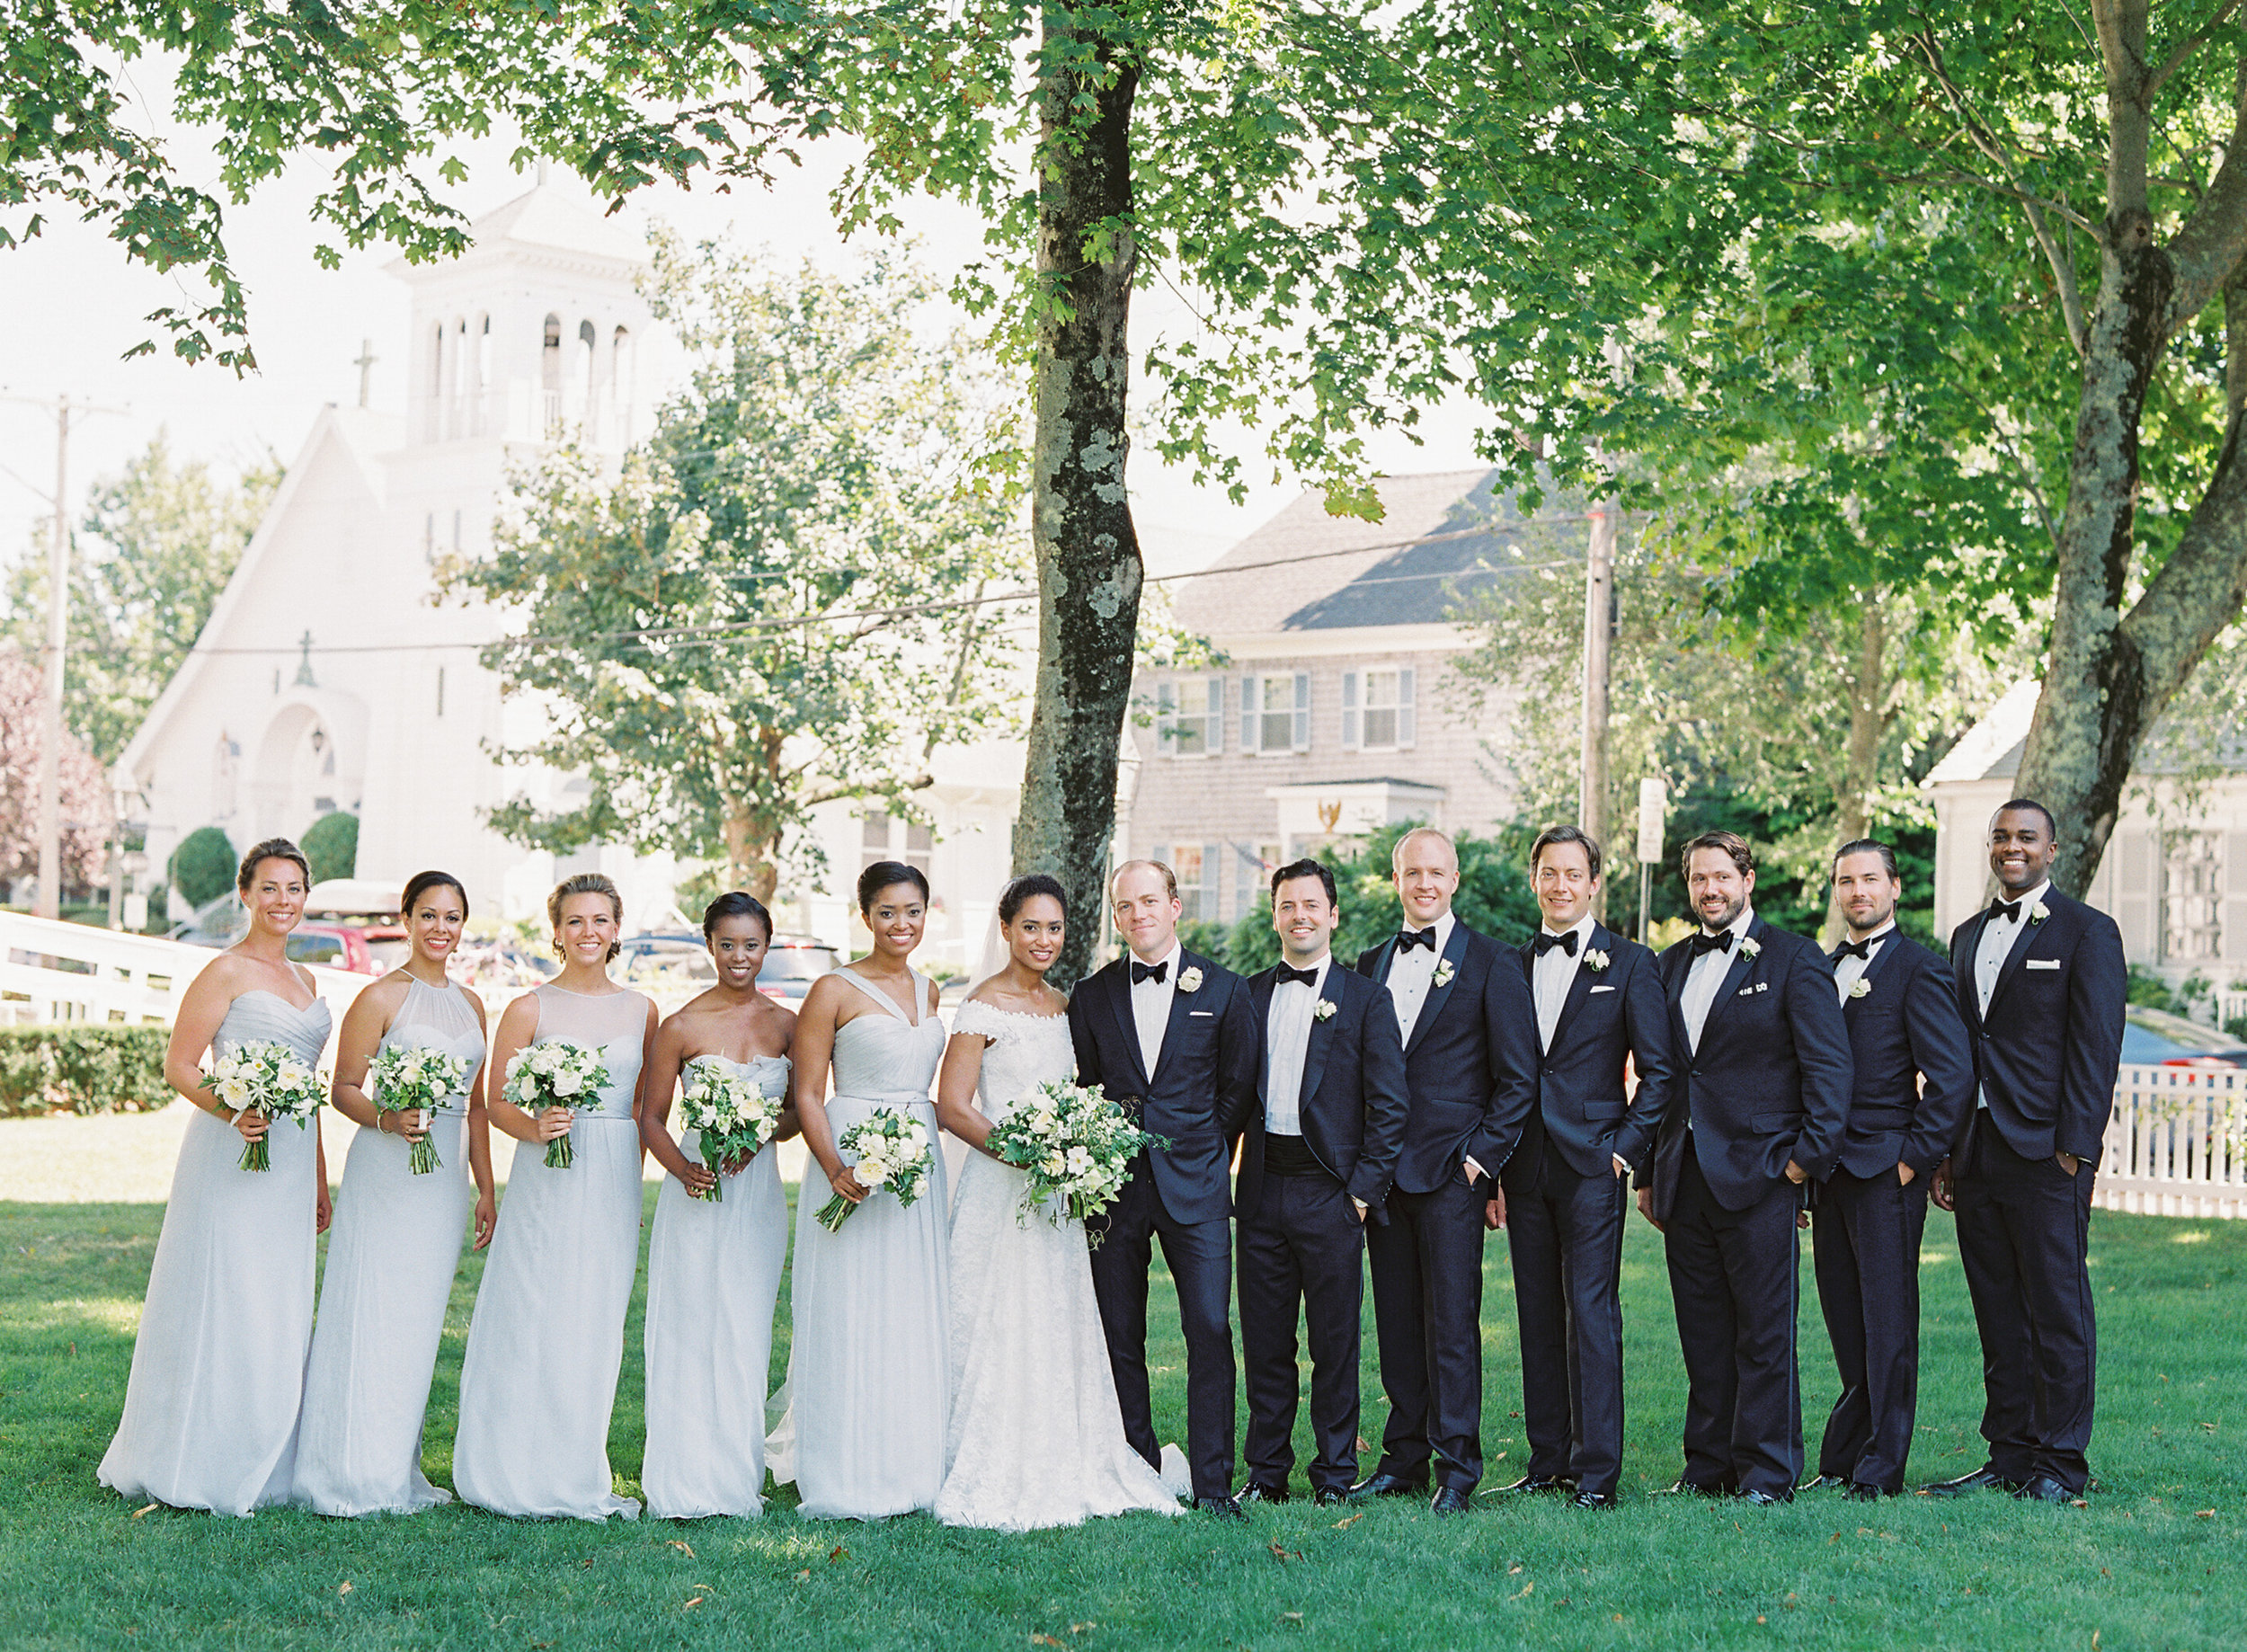 Marthas-Vineyard-Wedding-on-Martha-Stewart-244.jpg